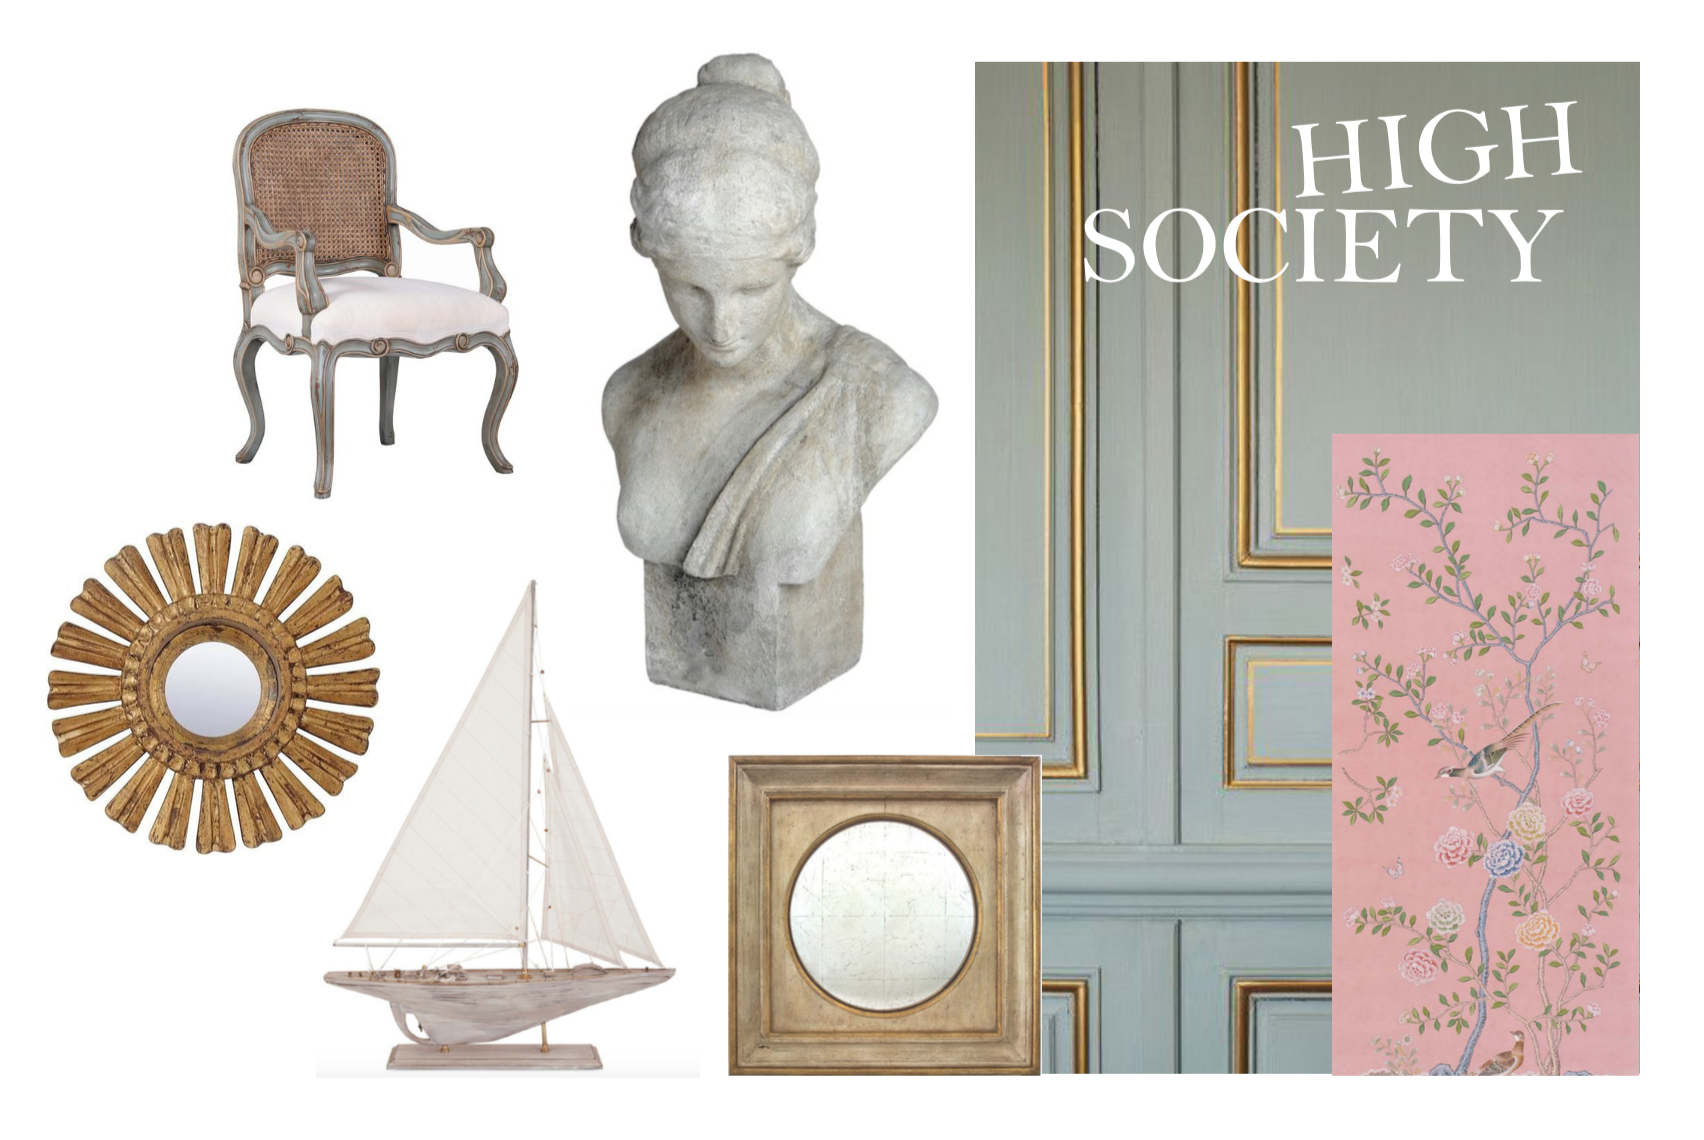 Gold gilding, model boats, gold trim and classical busts, still some of my favorite things